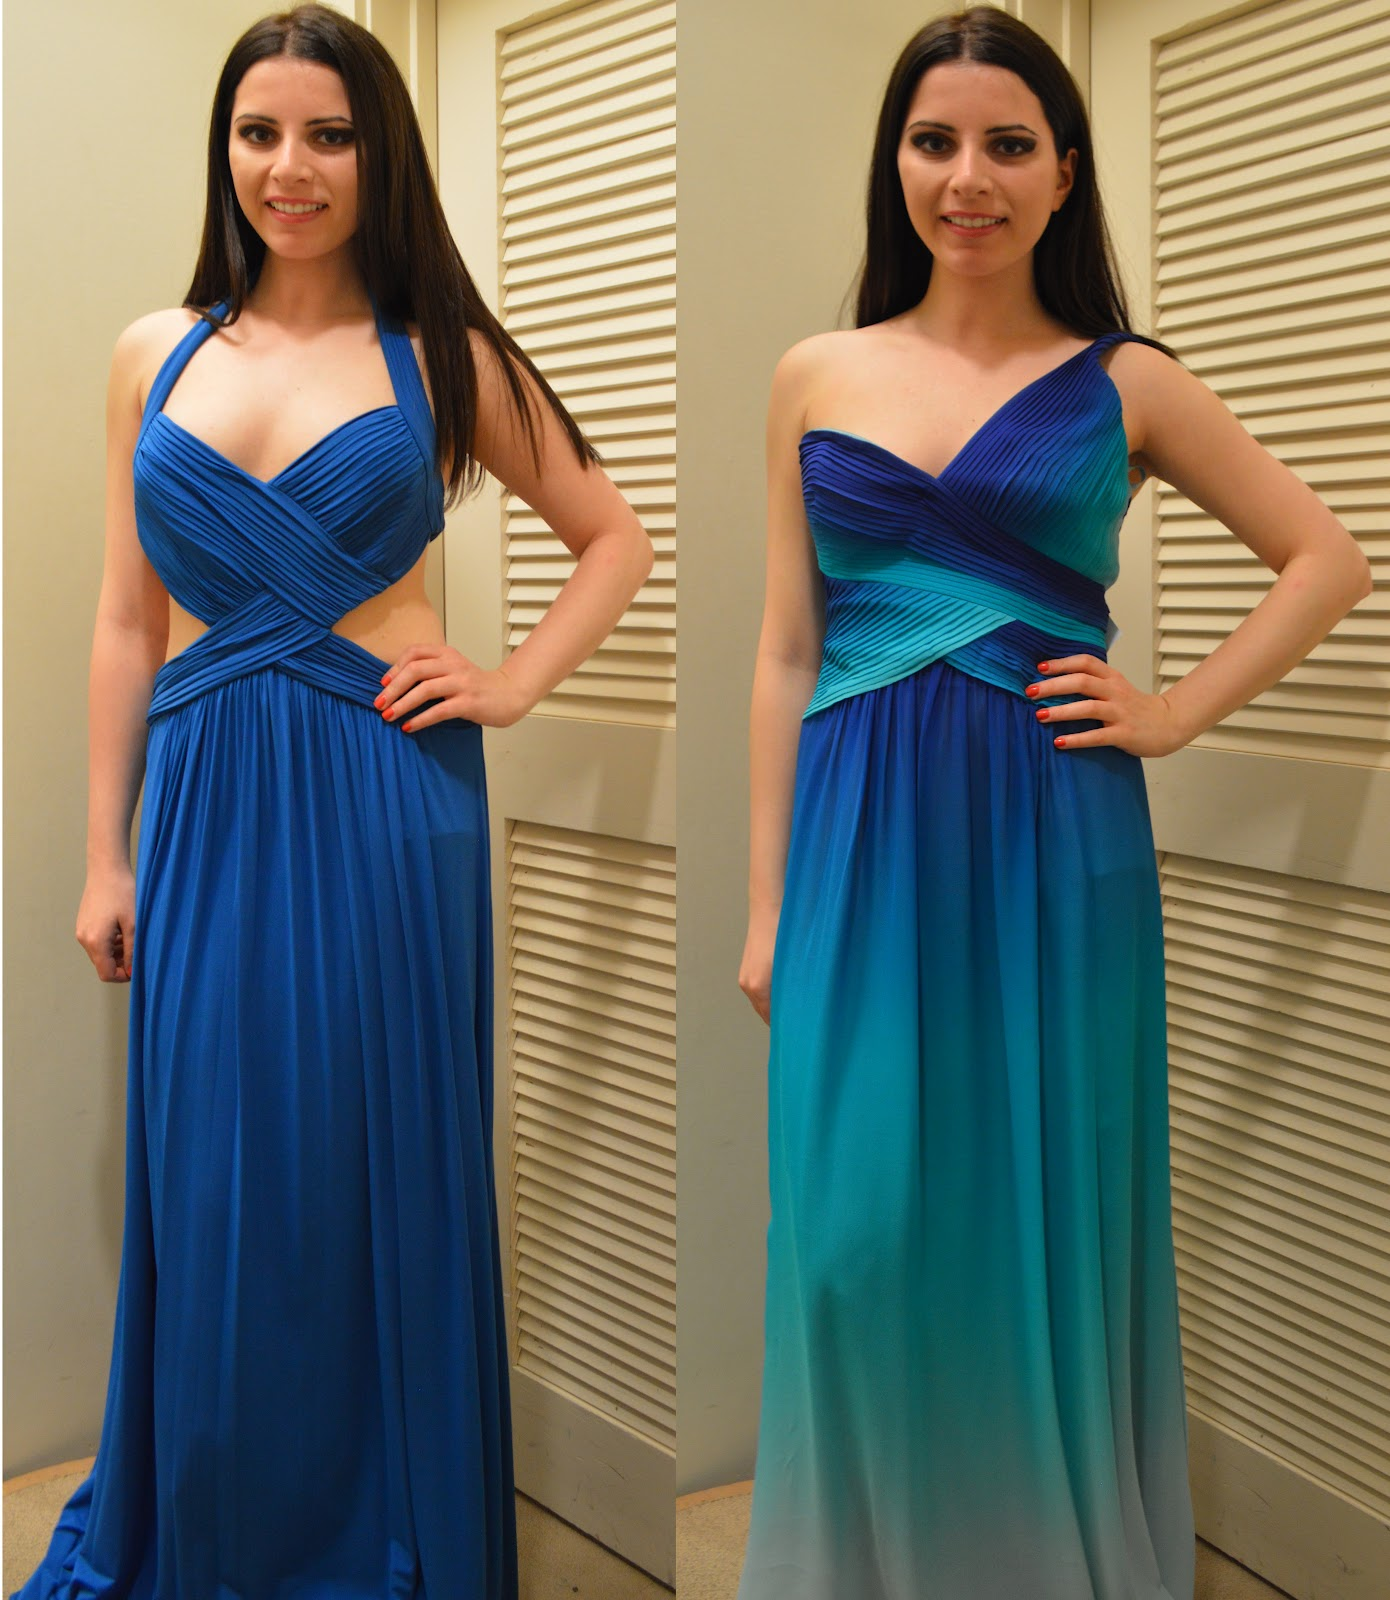 The Style Socialite - A Fashion/Society Blog : Trying On BCBG Gowns ...